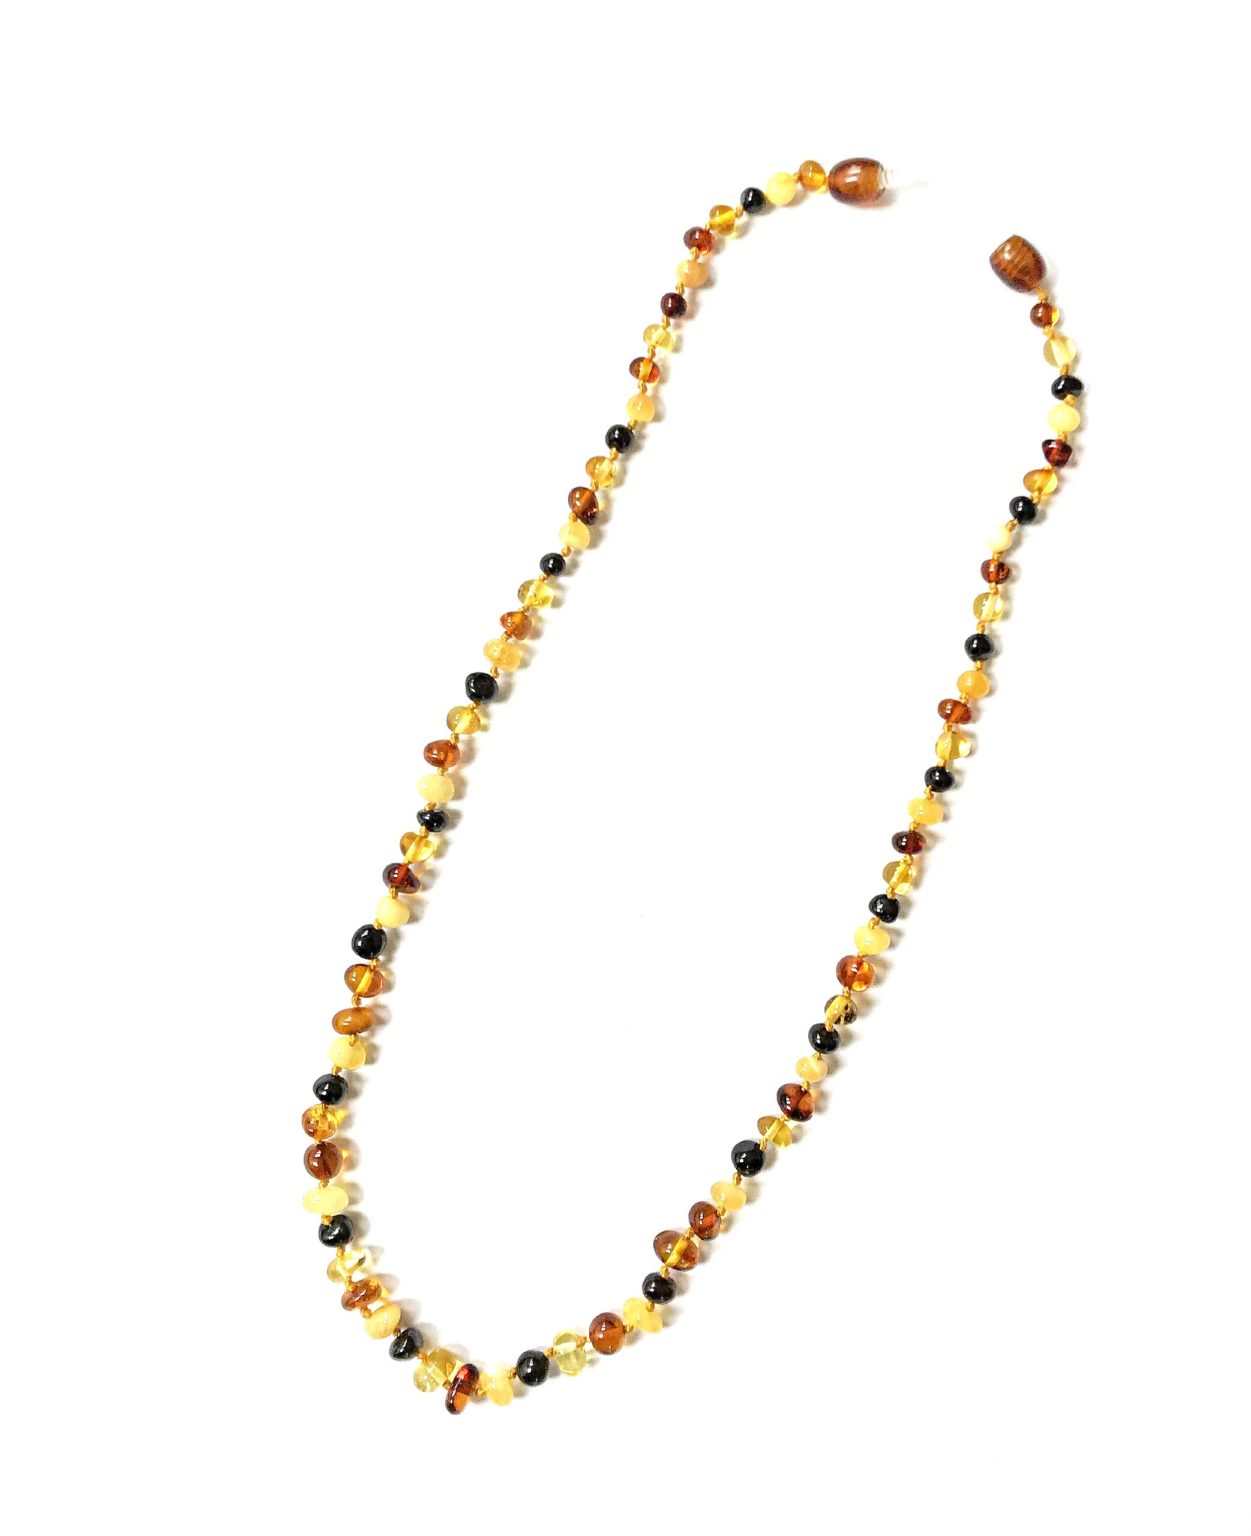 Natural Baltic Amber multi color Necklace. Amberman.